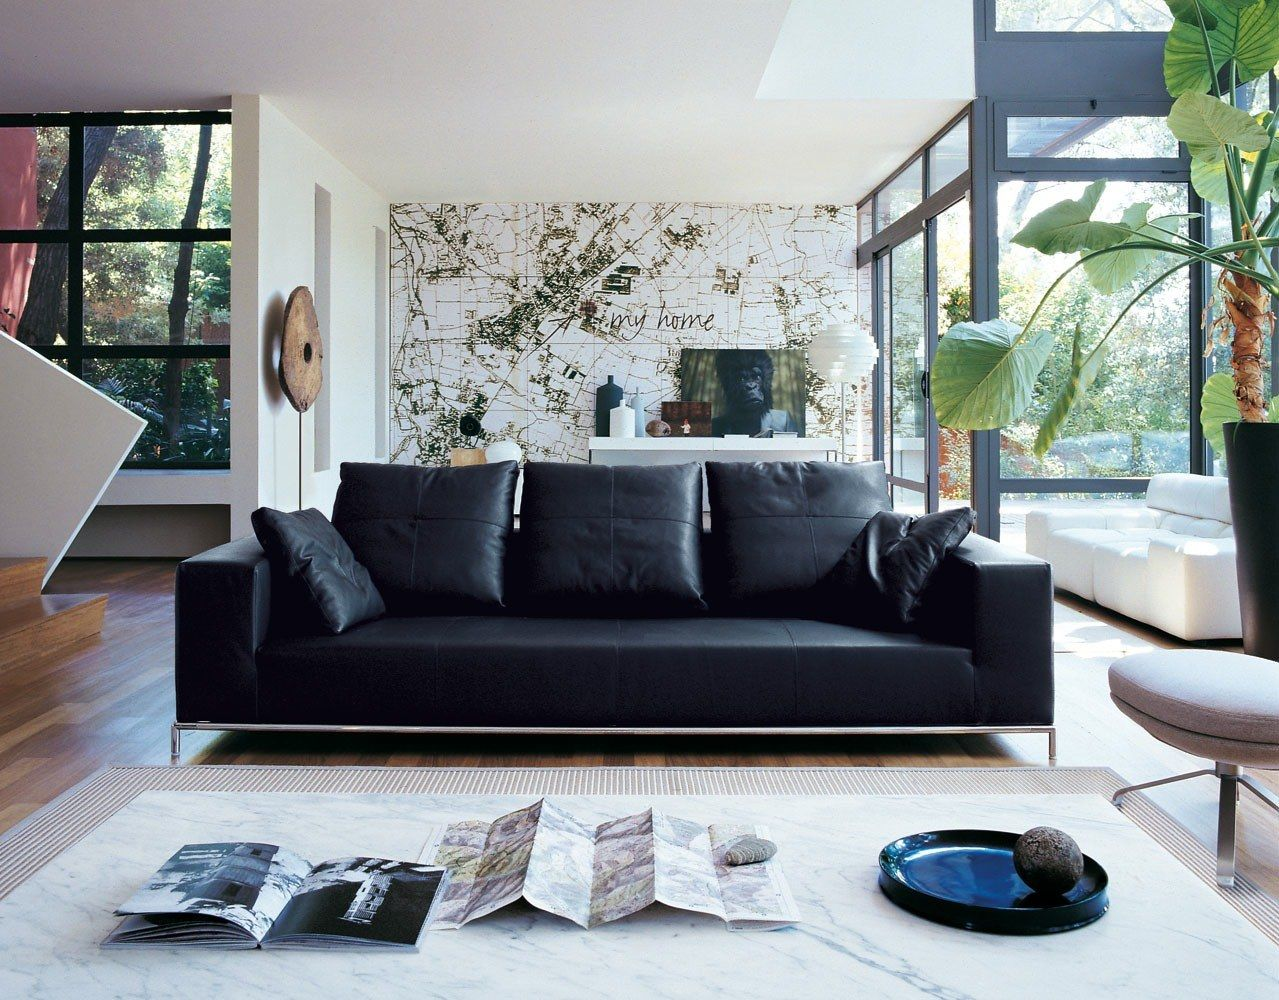 Black Sofa: Elegant and Original Design for Flawless Interior. Modern interior with panoramic windows and accent central piece